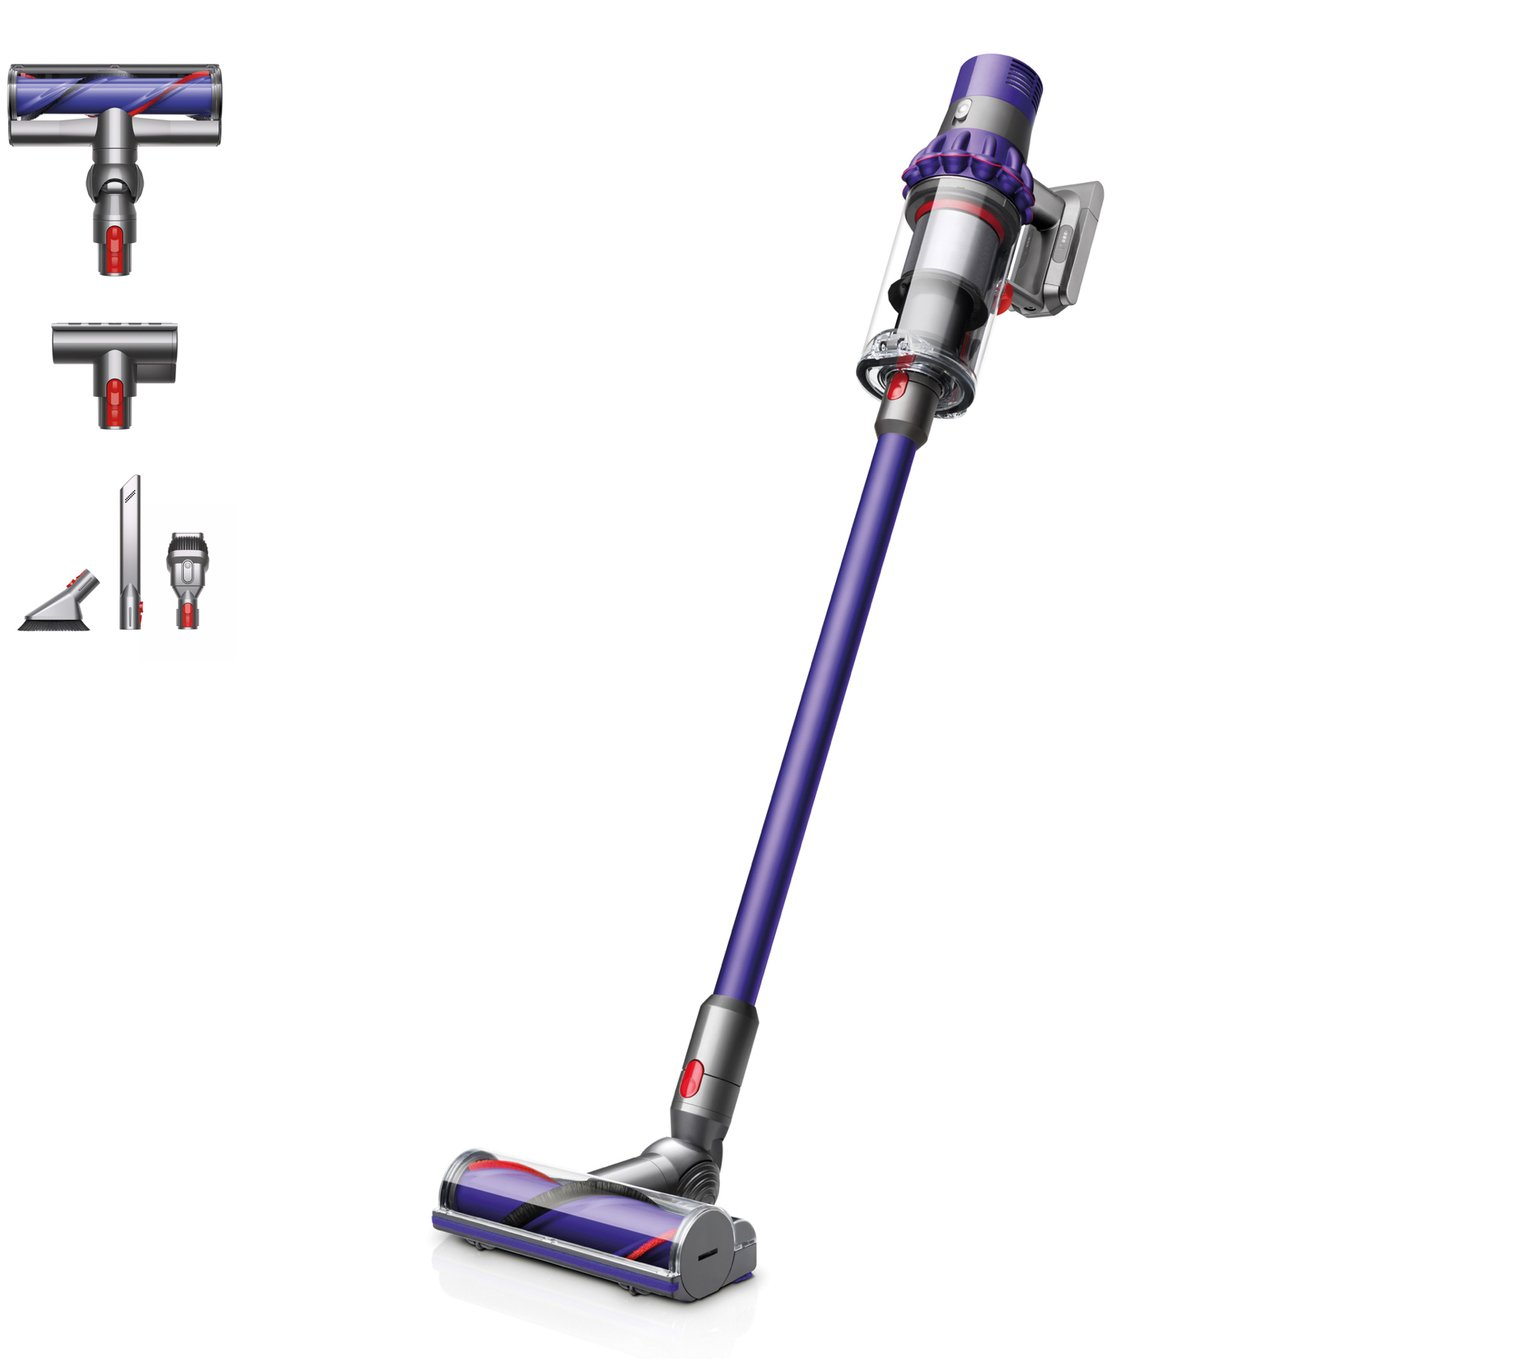 Dyson Cyclone V10 Animal Cordless Vacuum Cleaner